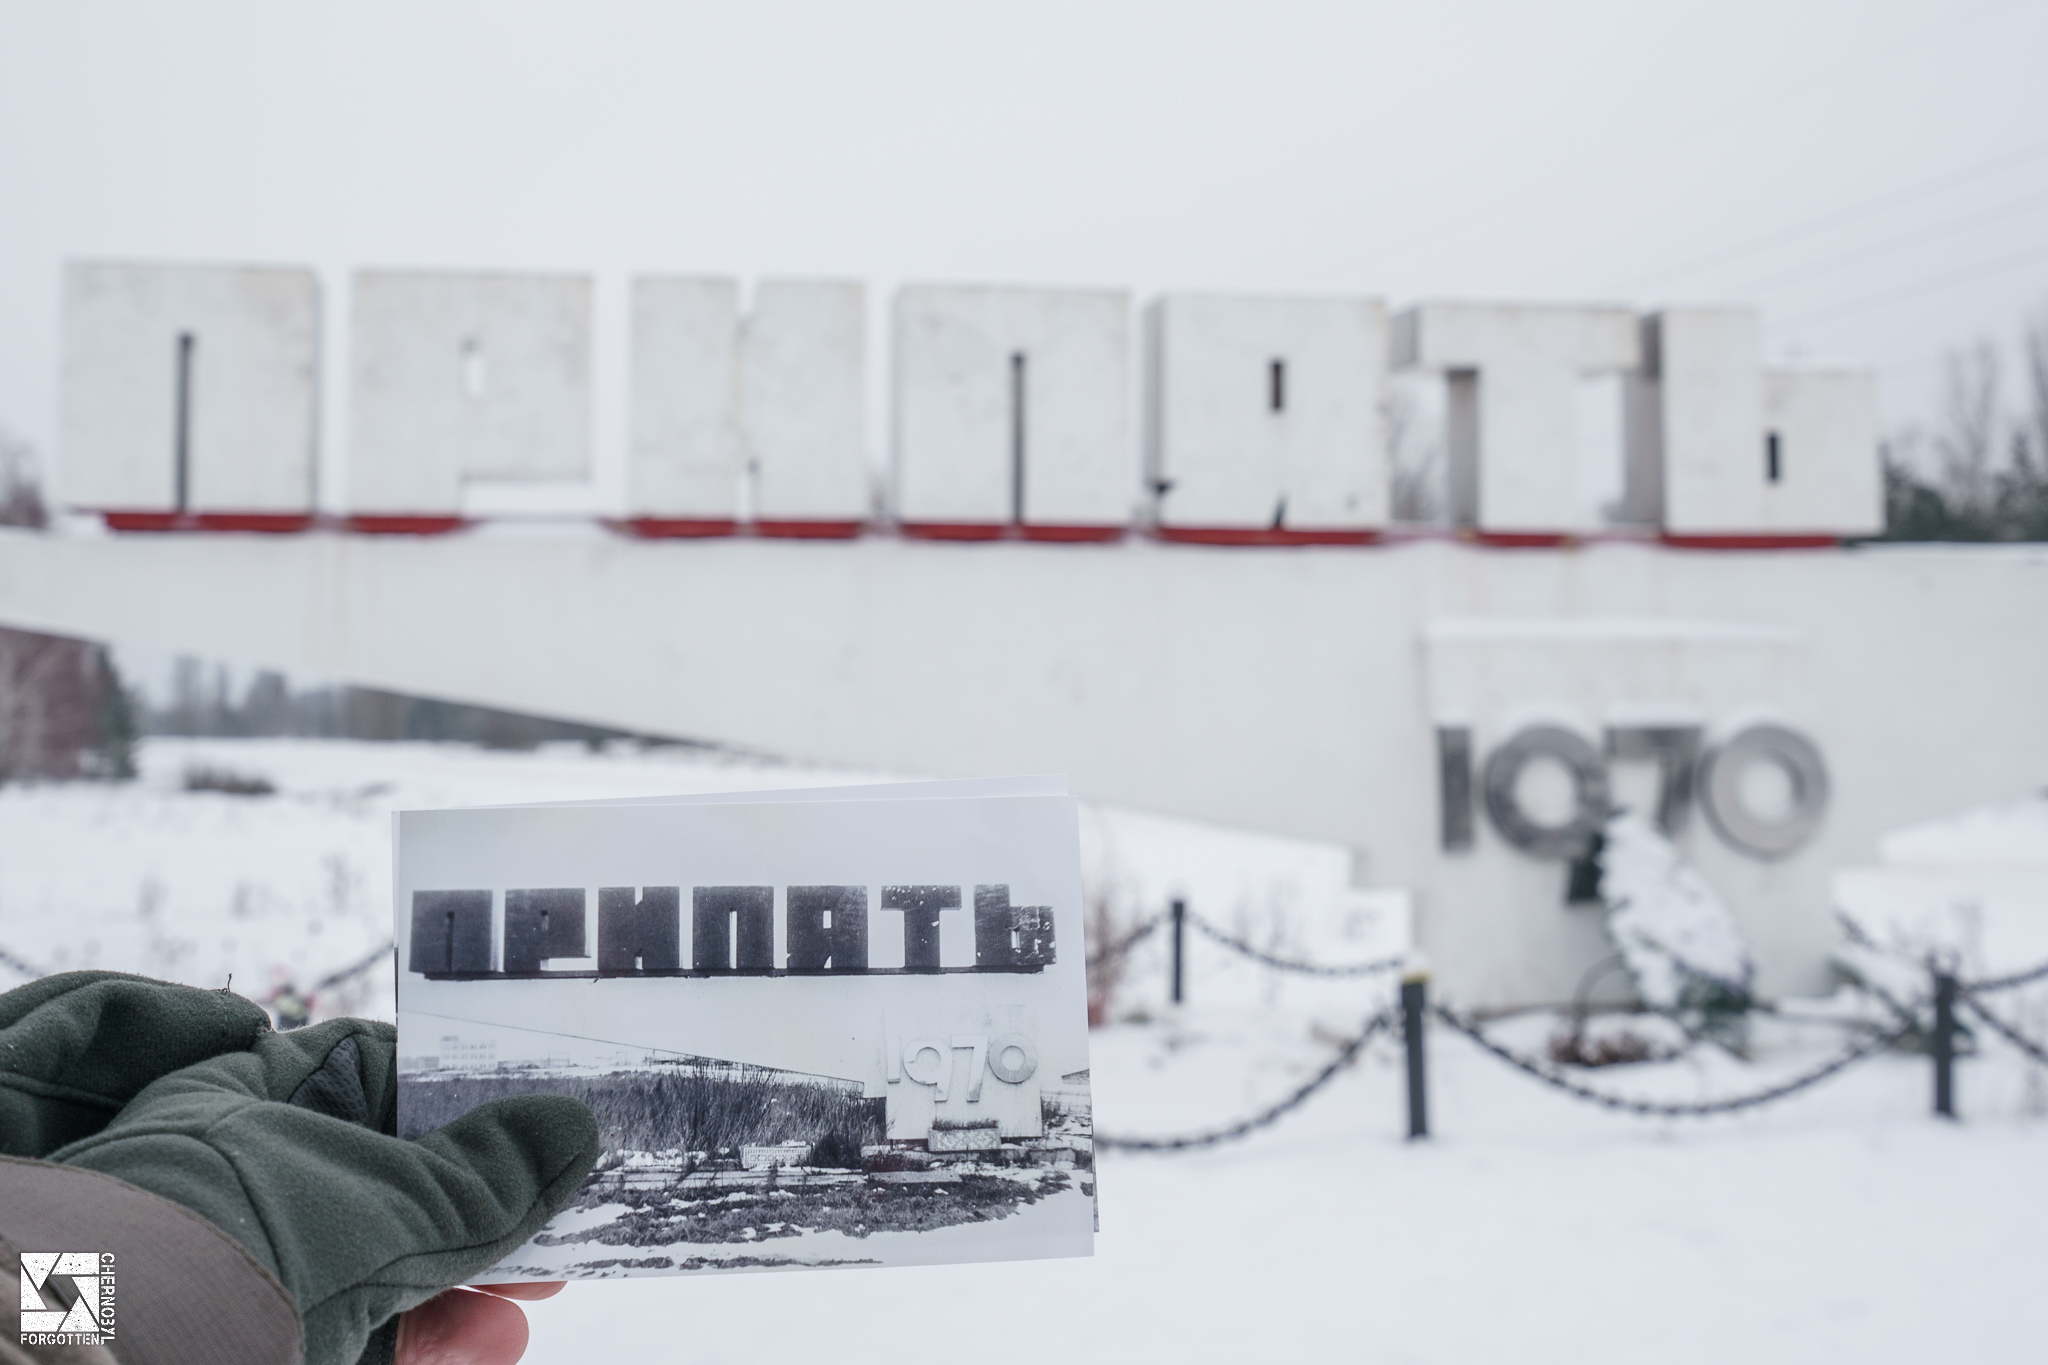 Winter in Pripyat Before and After the Accident - Pripyat 1970 sign